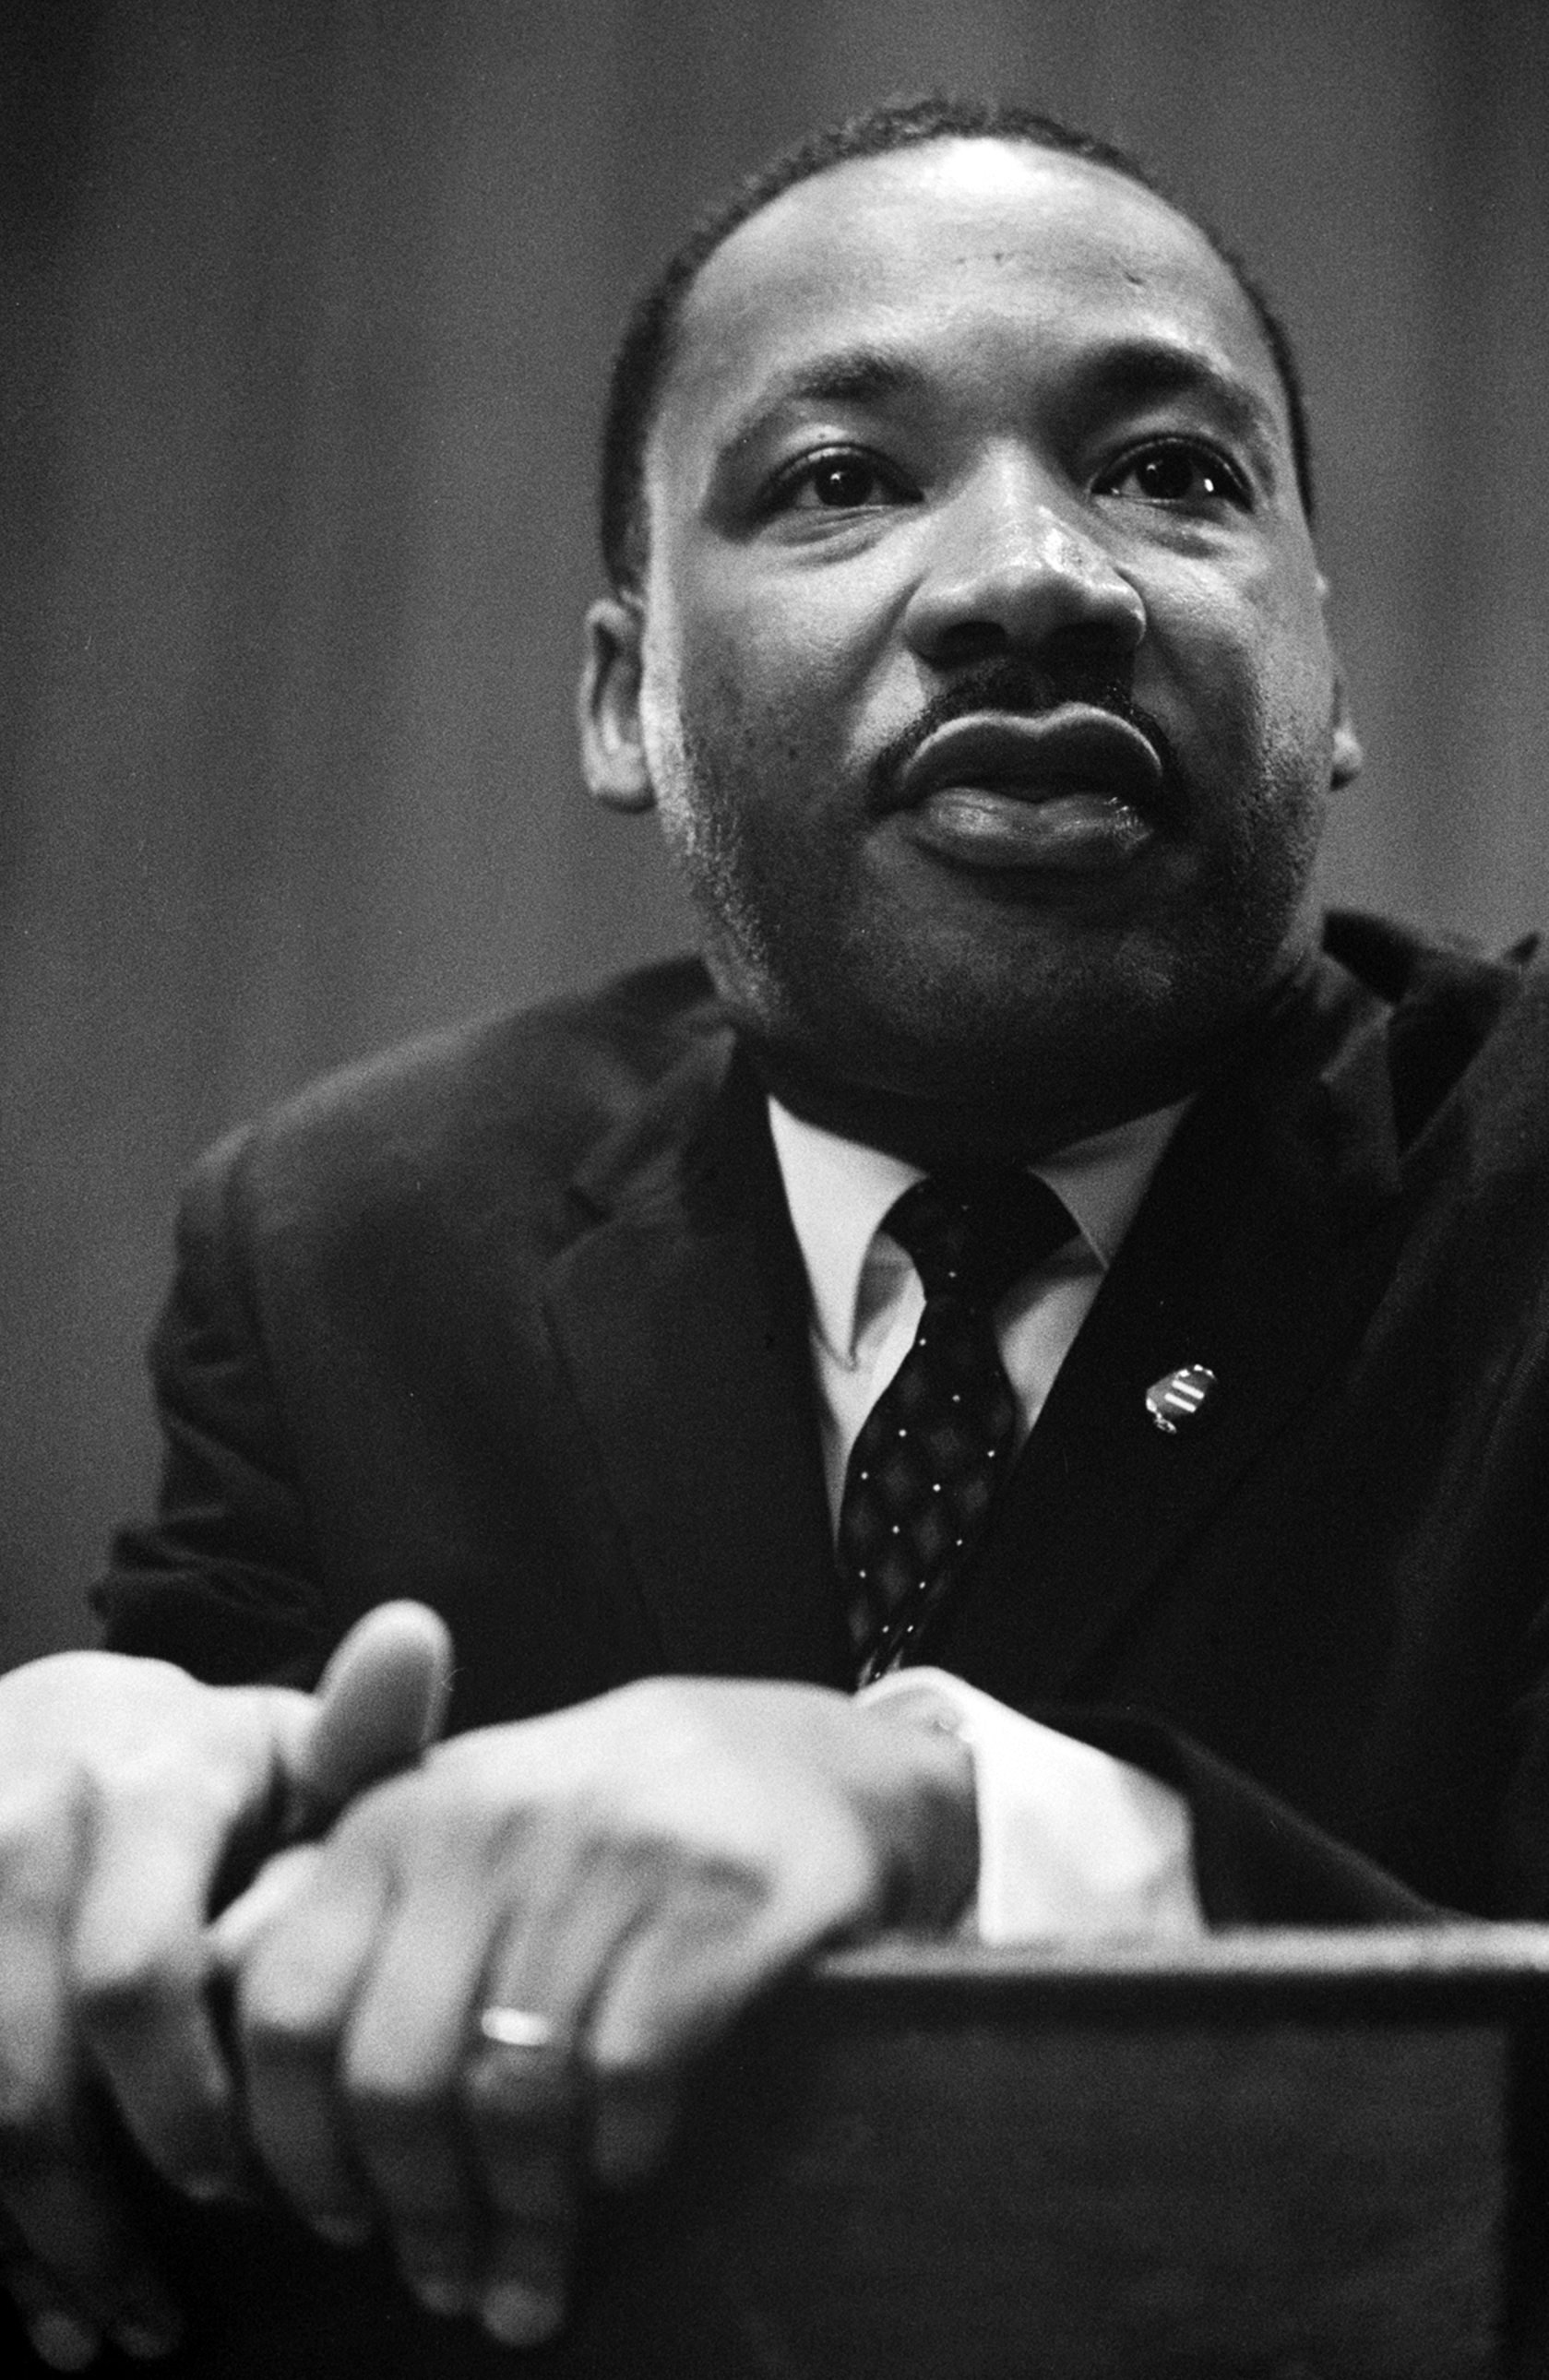 martin luther king - photo #3